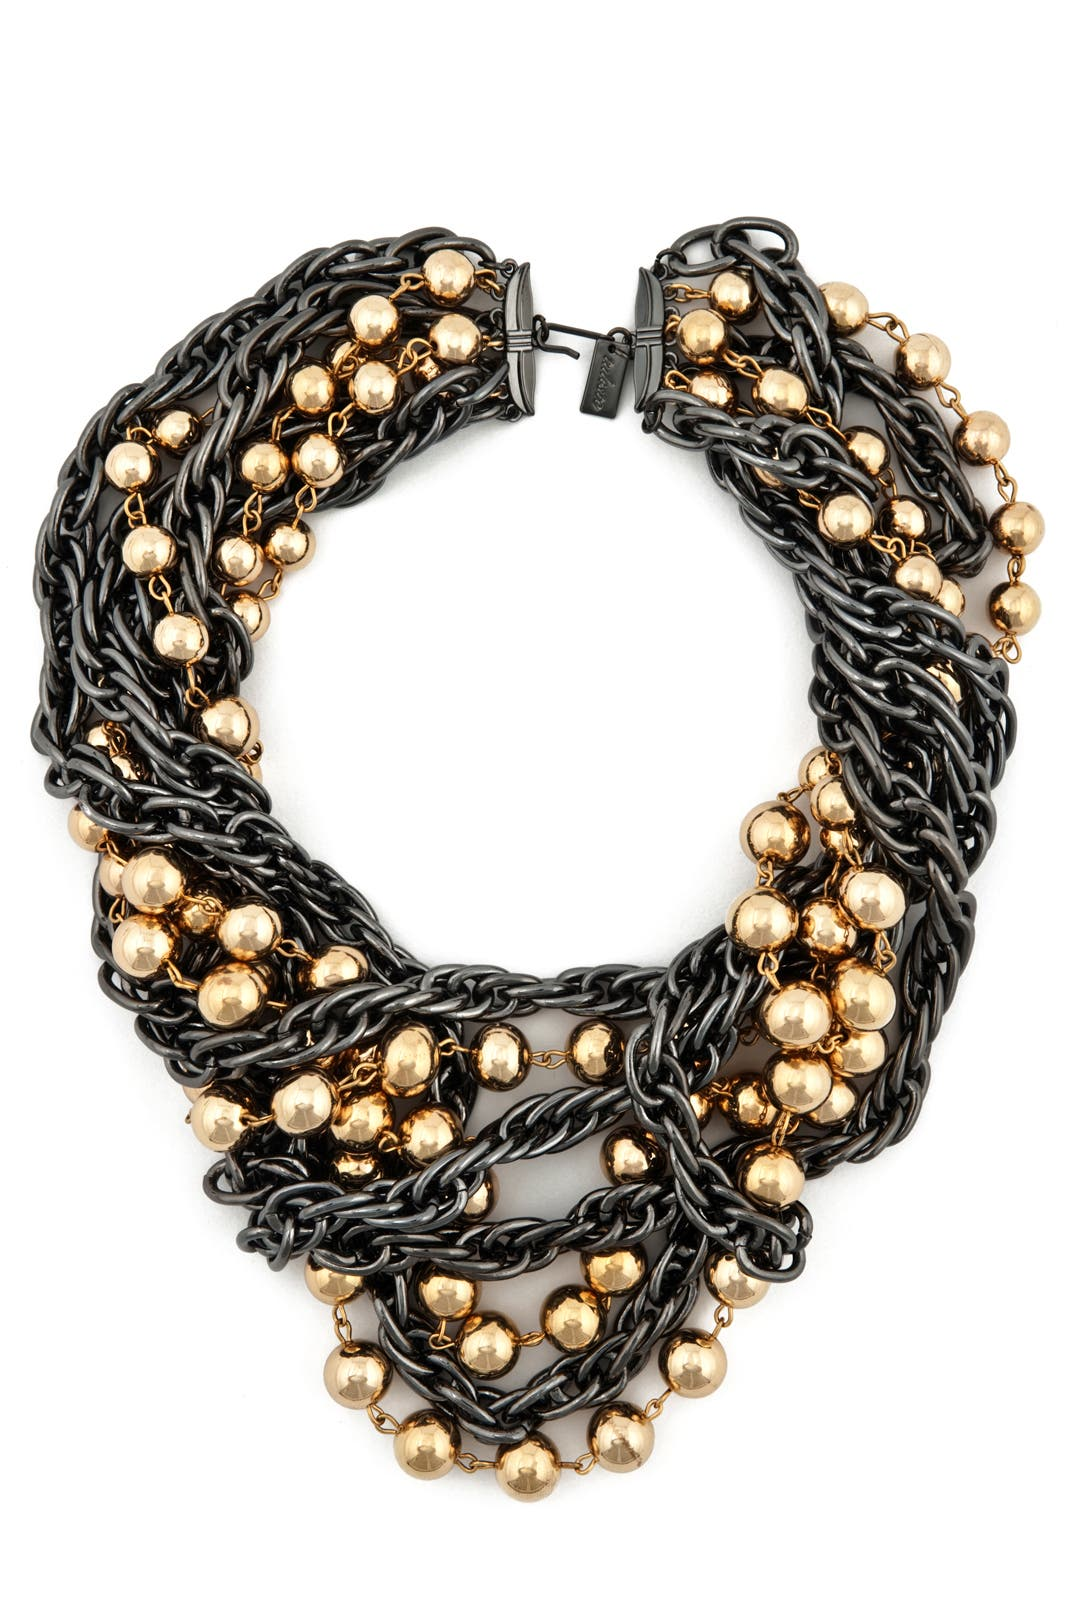 Layered Ball and Chain Necklace by Tuleste Market